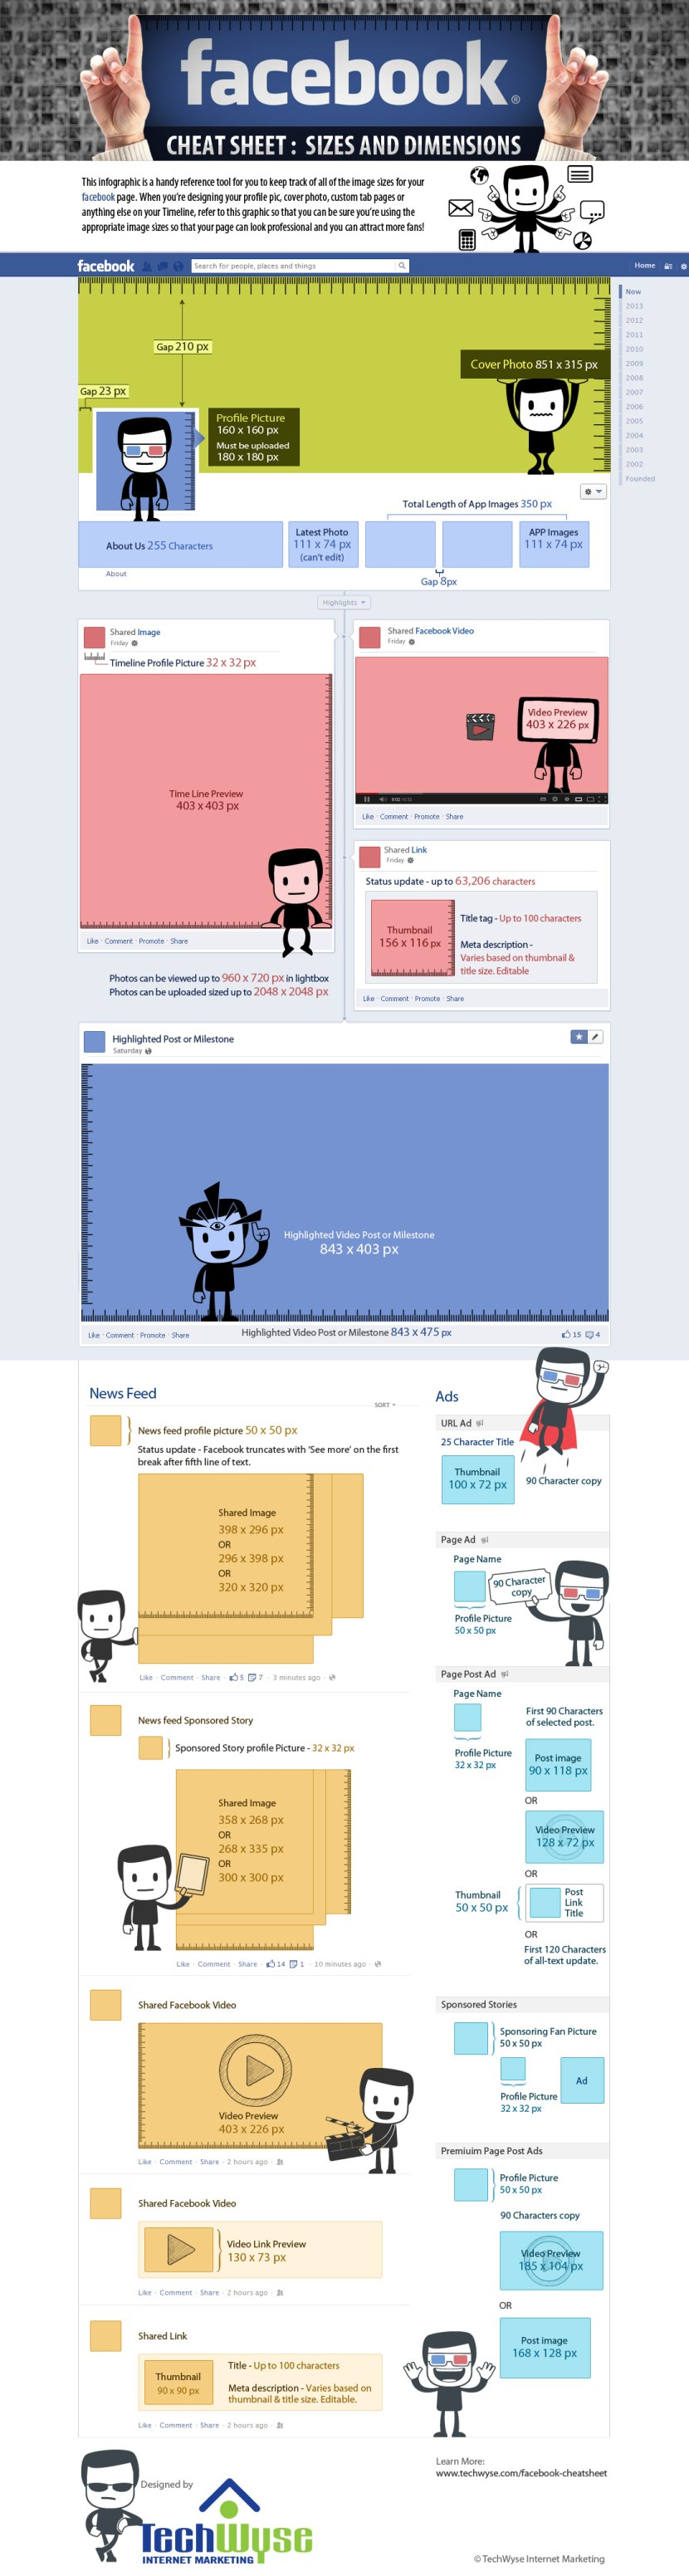 Facebook Cheat Sheet: Image Size and Dimensions